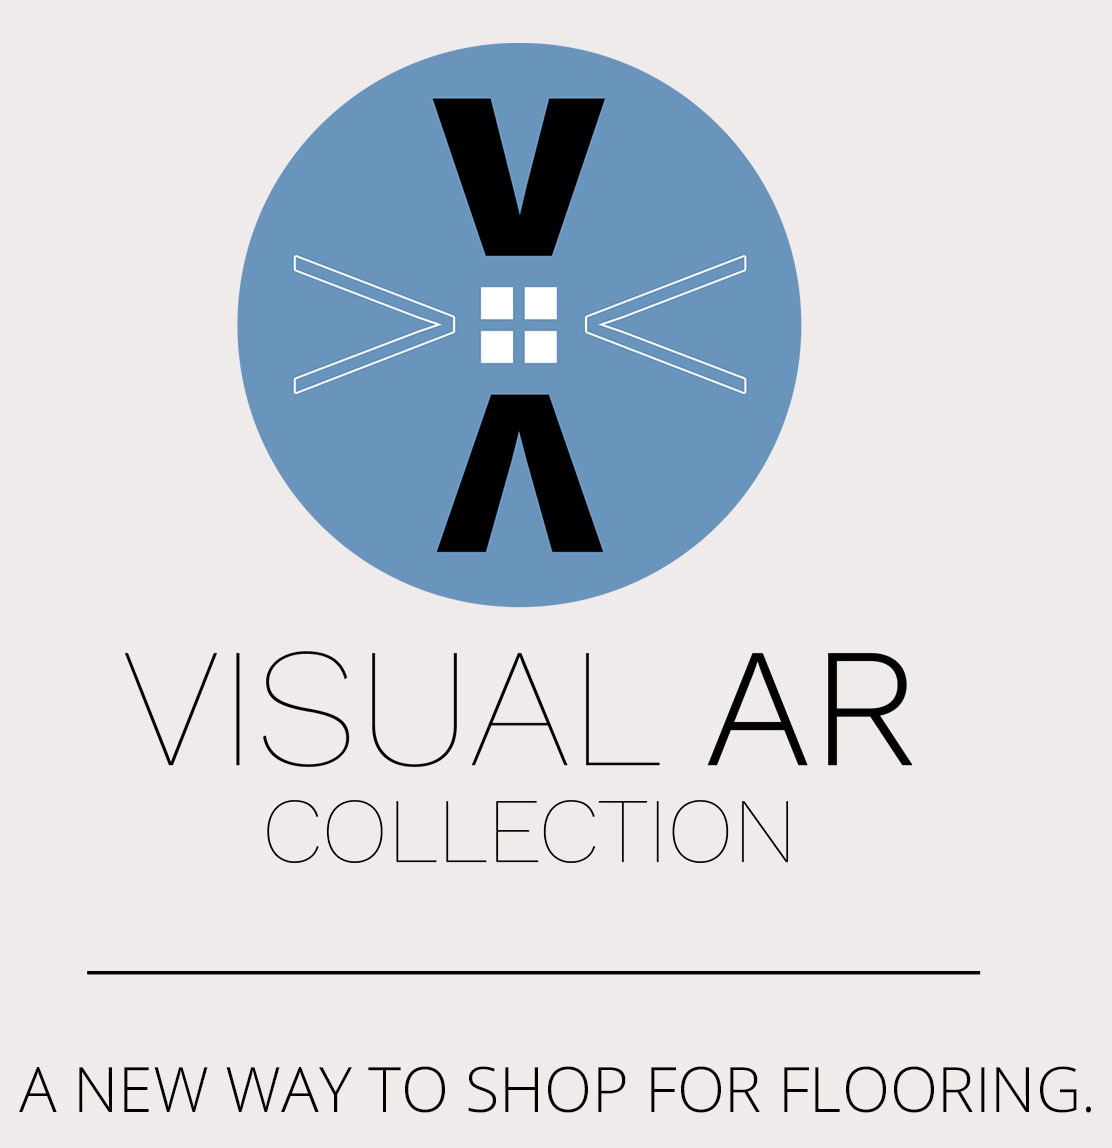 Visual AR Collection